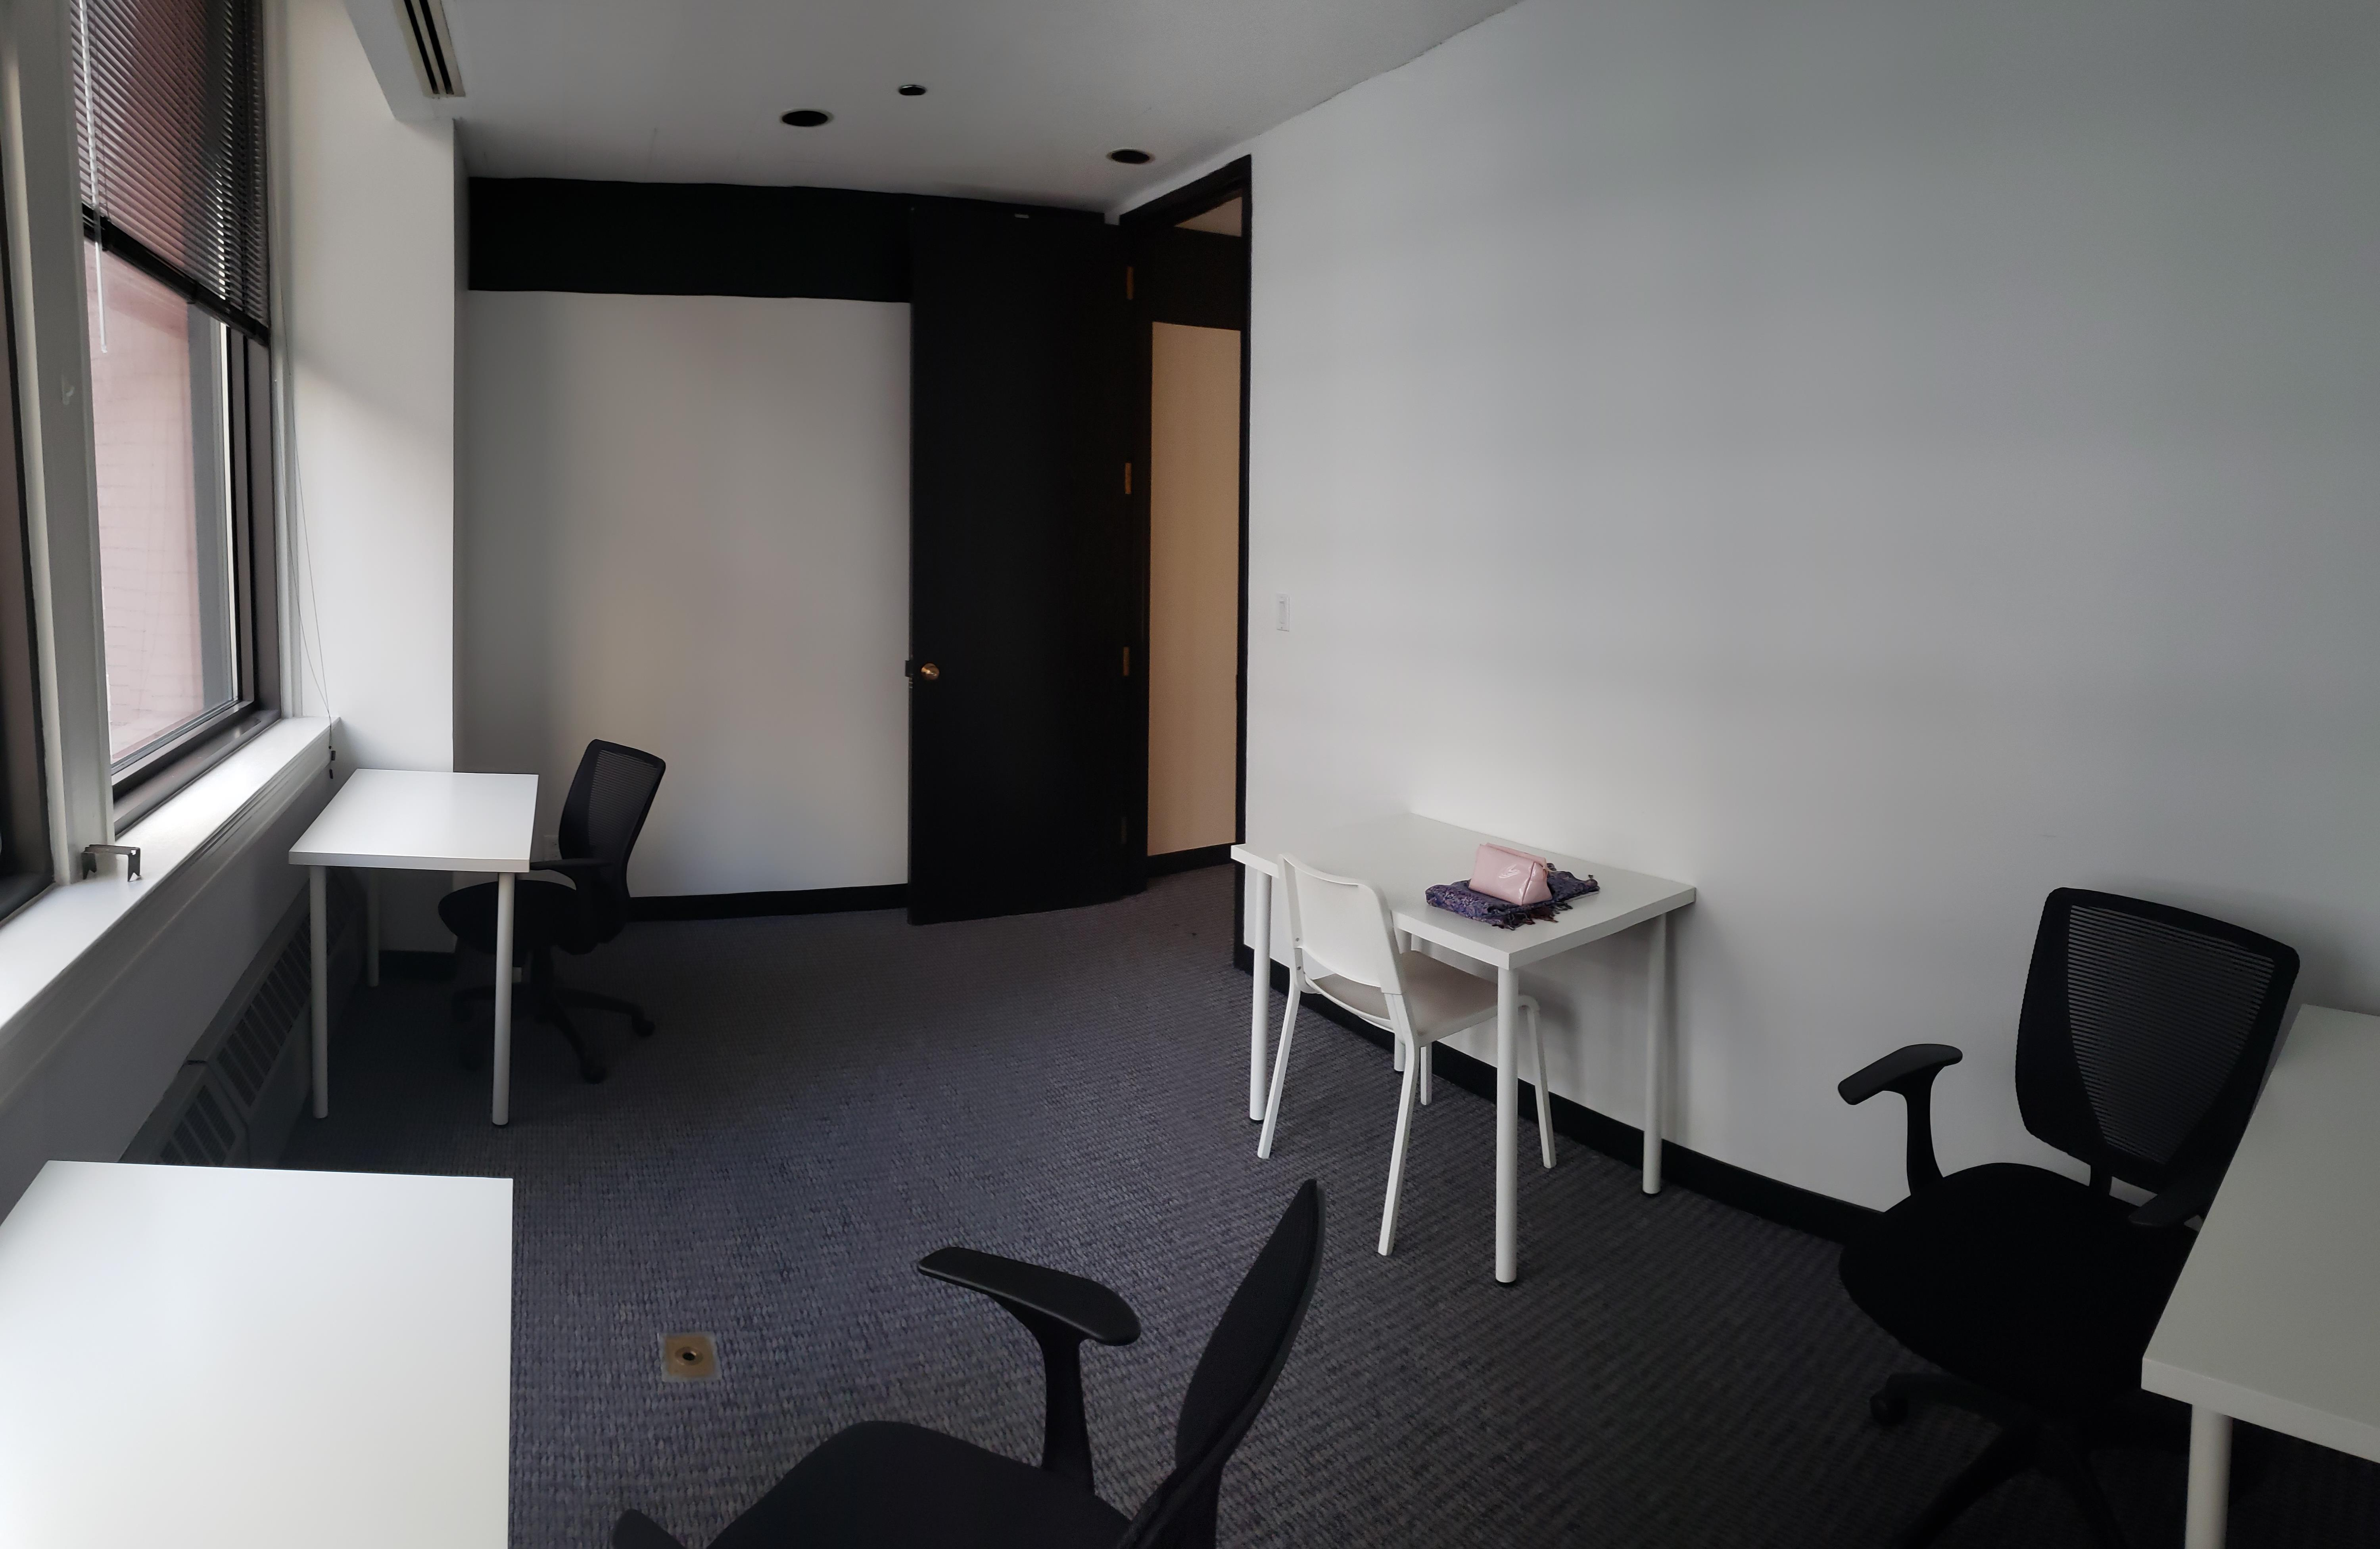 Delphi Group US Inc. - Office Suite 1